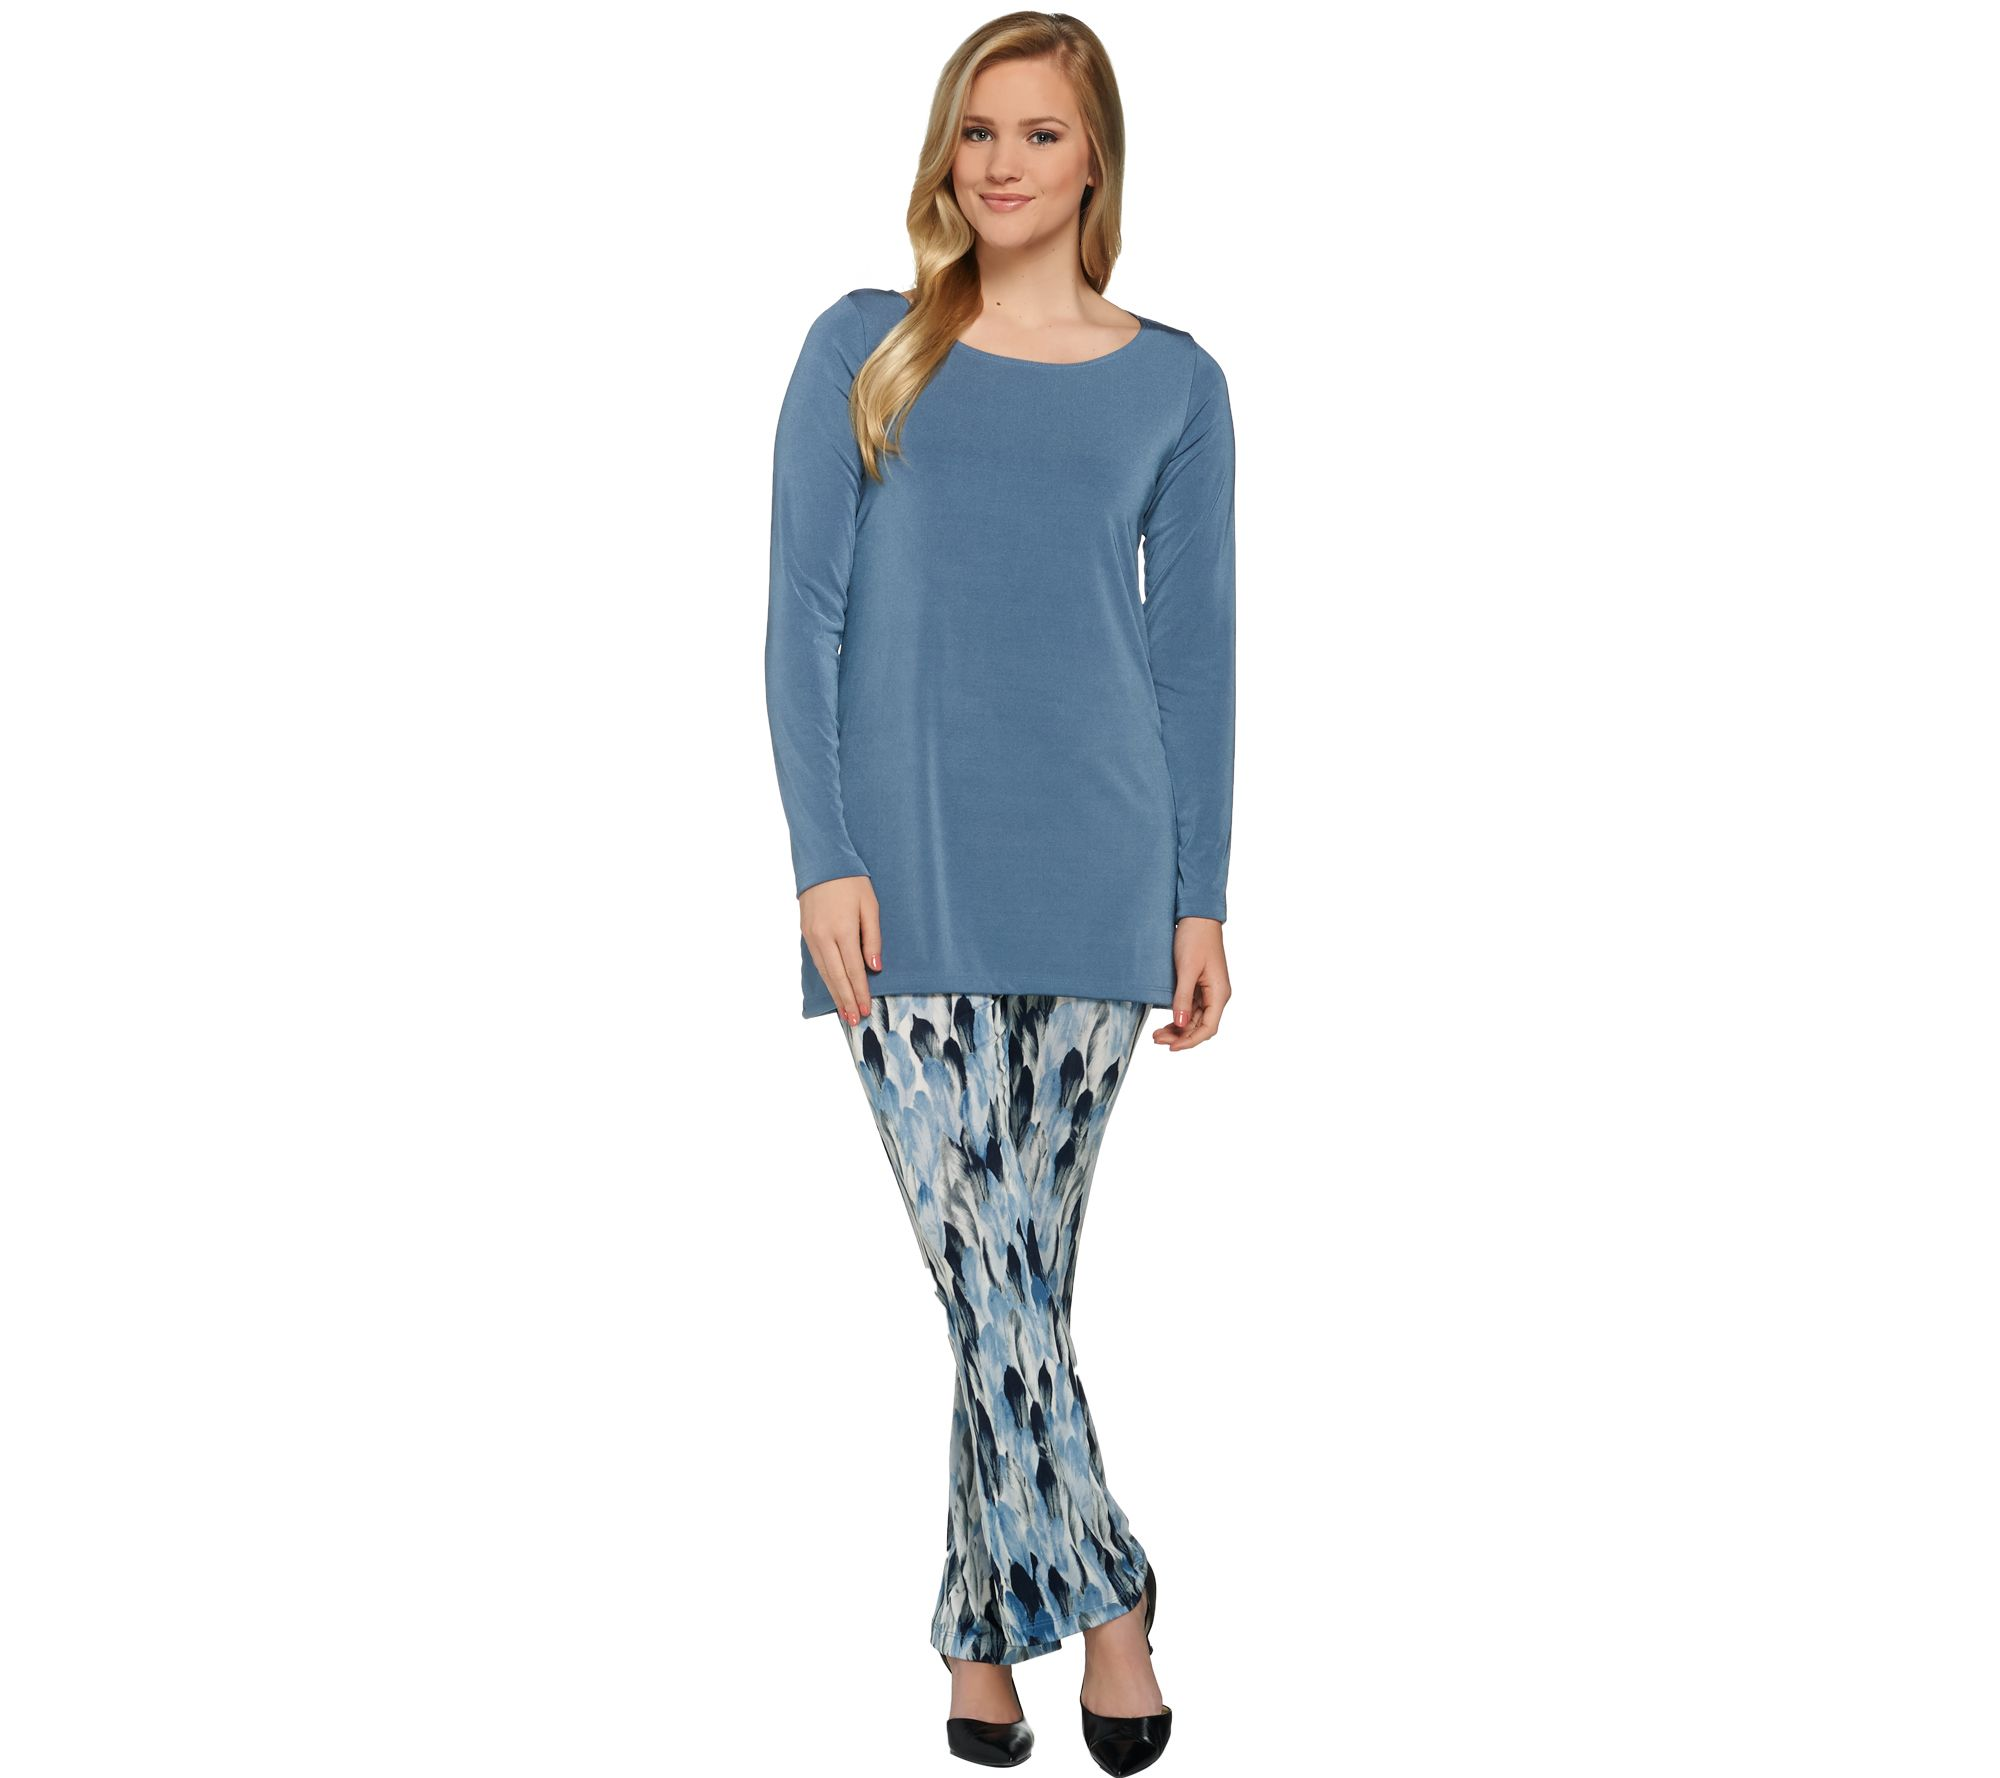 Attitudes by Renee Radiant Knit Tunic and Pants Set